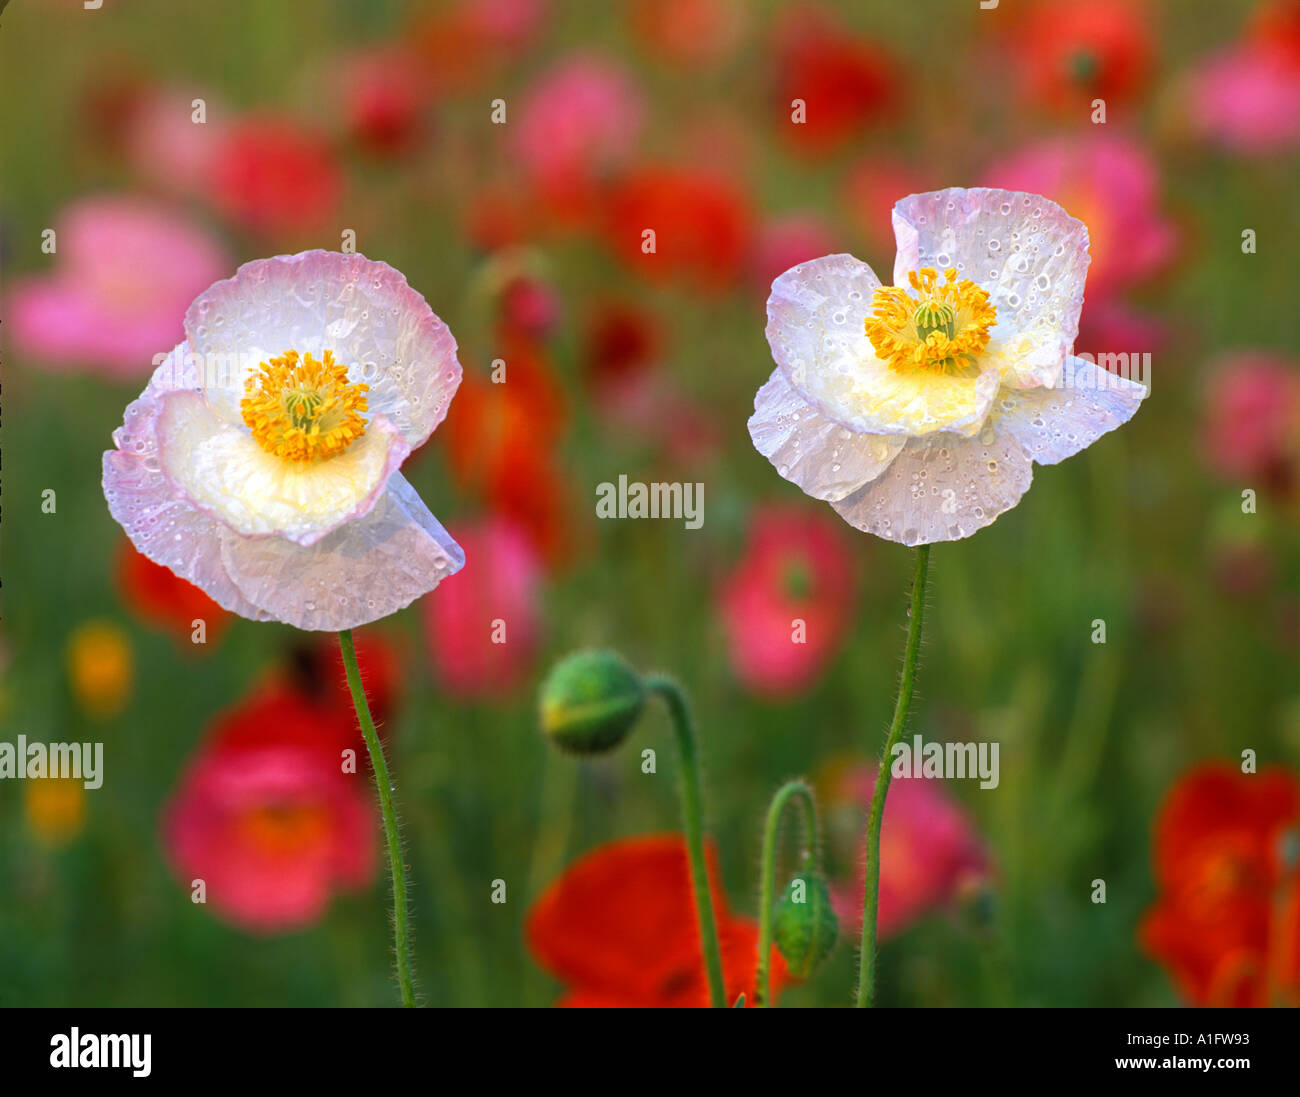 White Poppy Flowers In Garden Of Mixed Poppies Summer Lake Inn